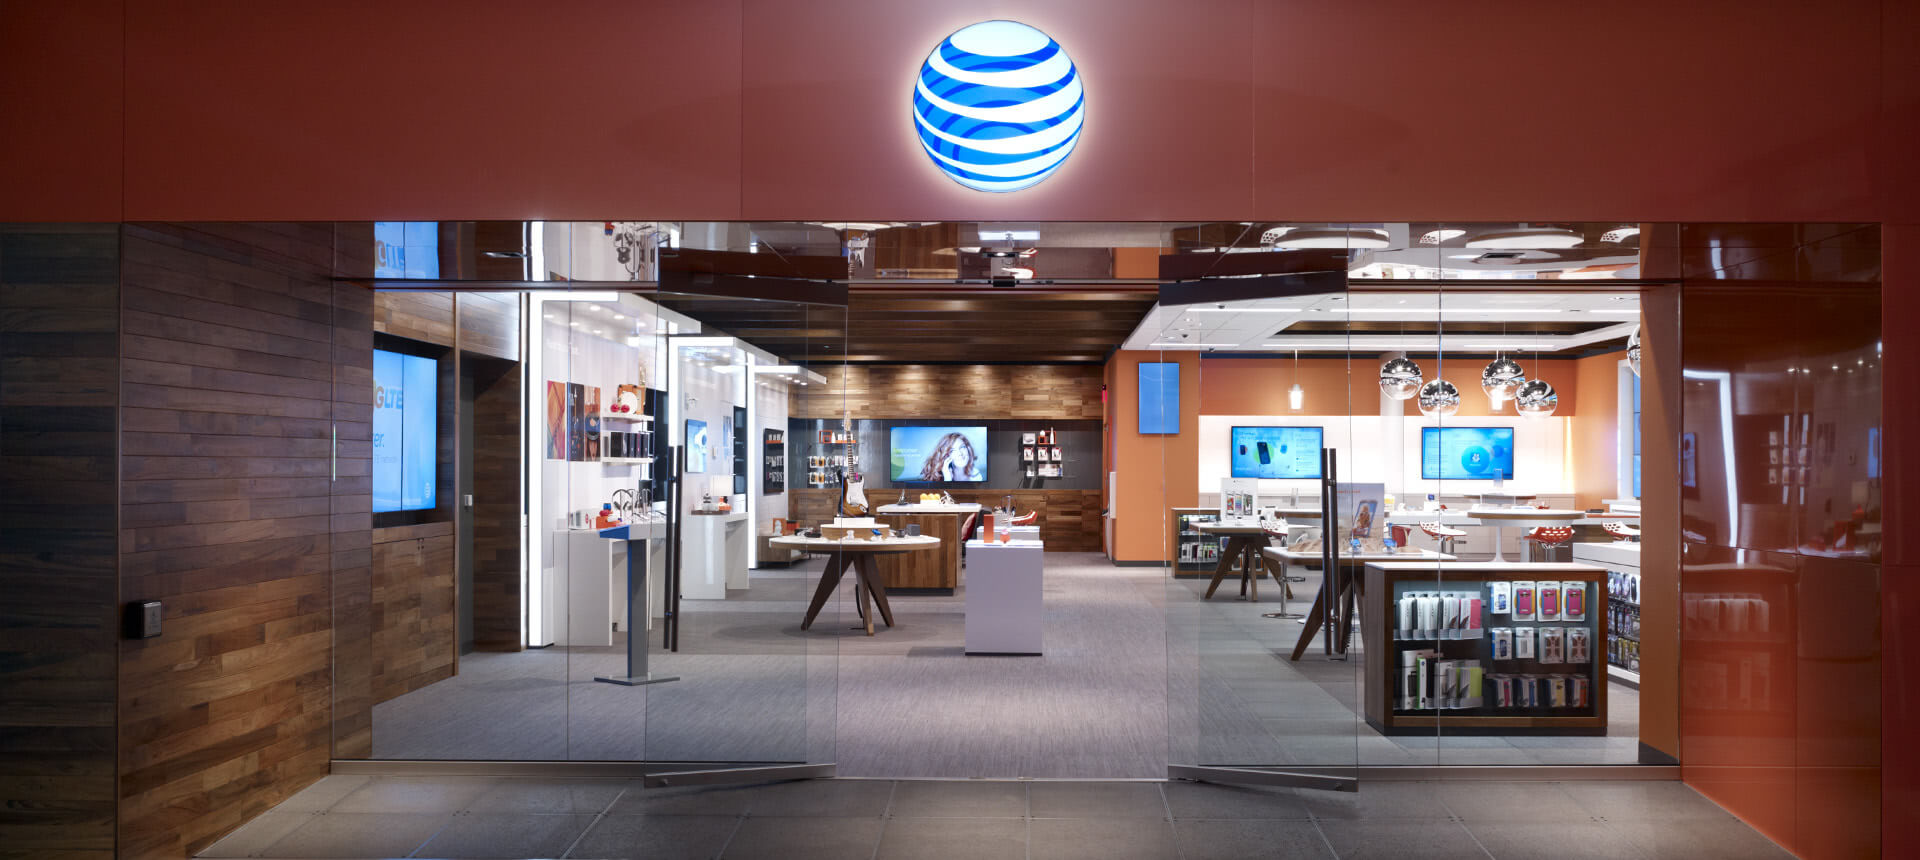 Complete AT&T in Pennsylvania Store Locator. List of all AT&T locations in Pennsylvania. Find hours of operation, street address, driving map, and contact information.